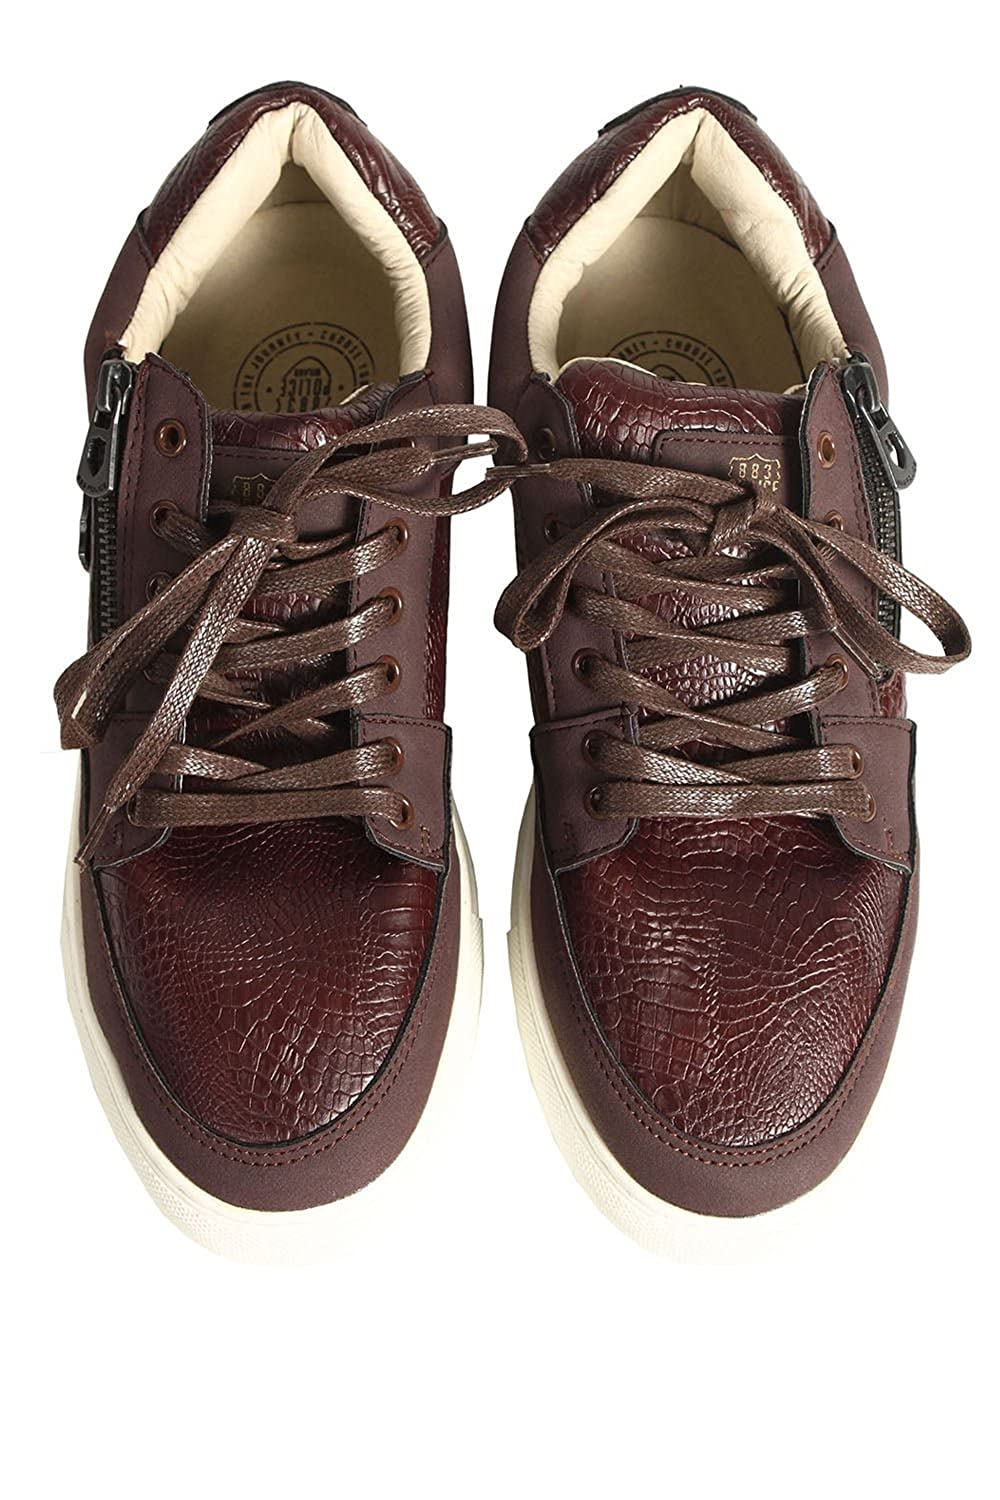 883 POLICE Game Trainers     Burgundy 97fba0